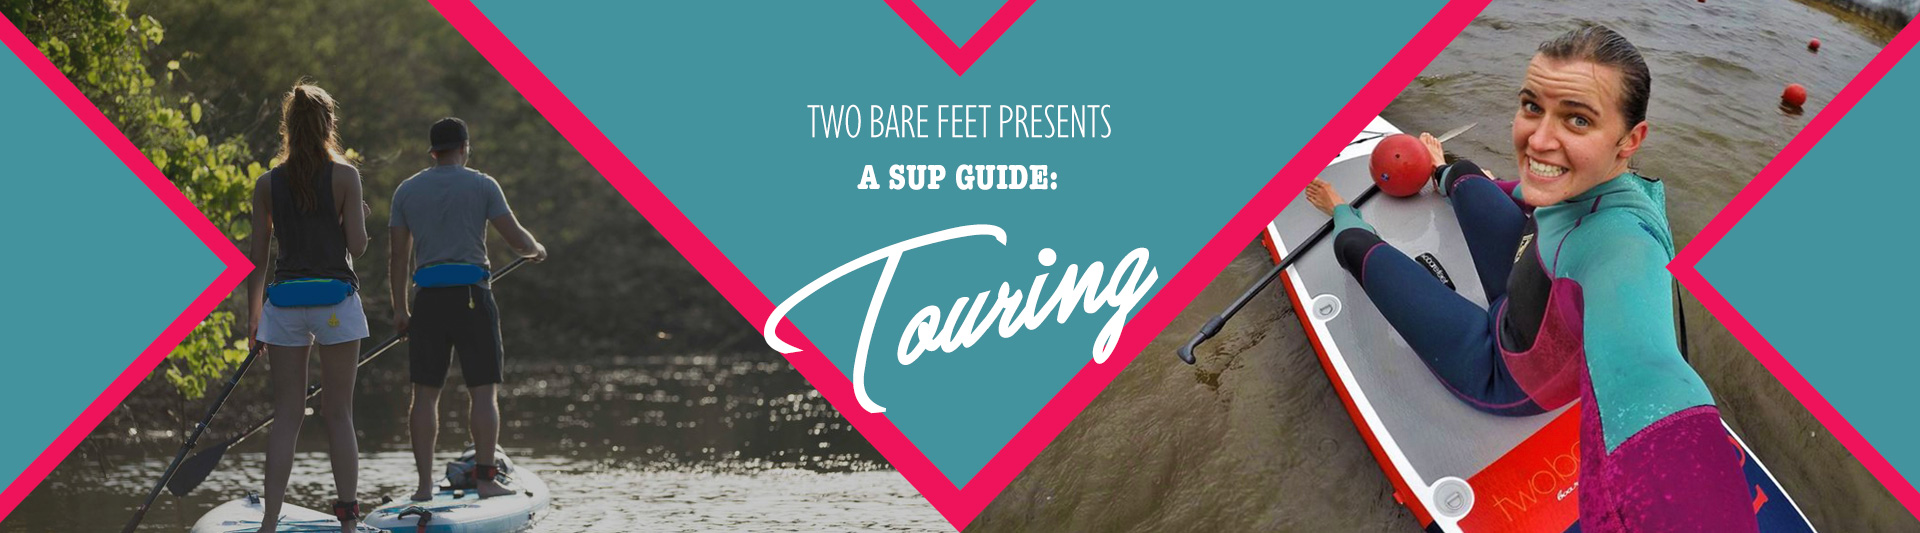 SUP Touring Banner